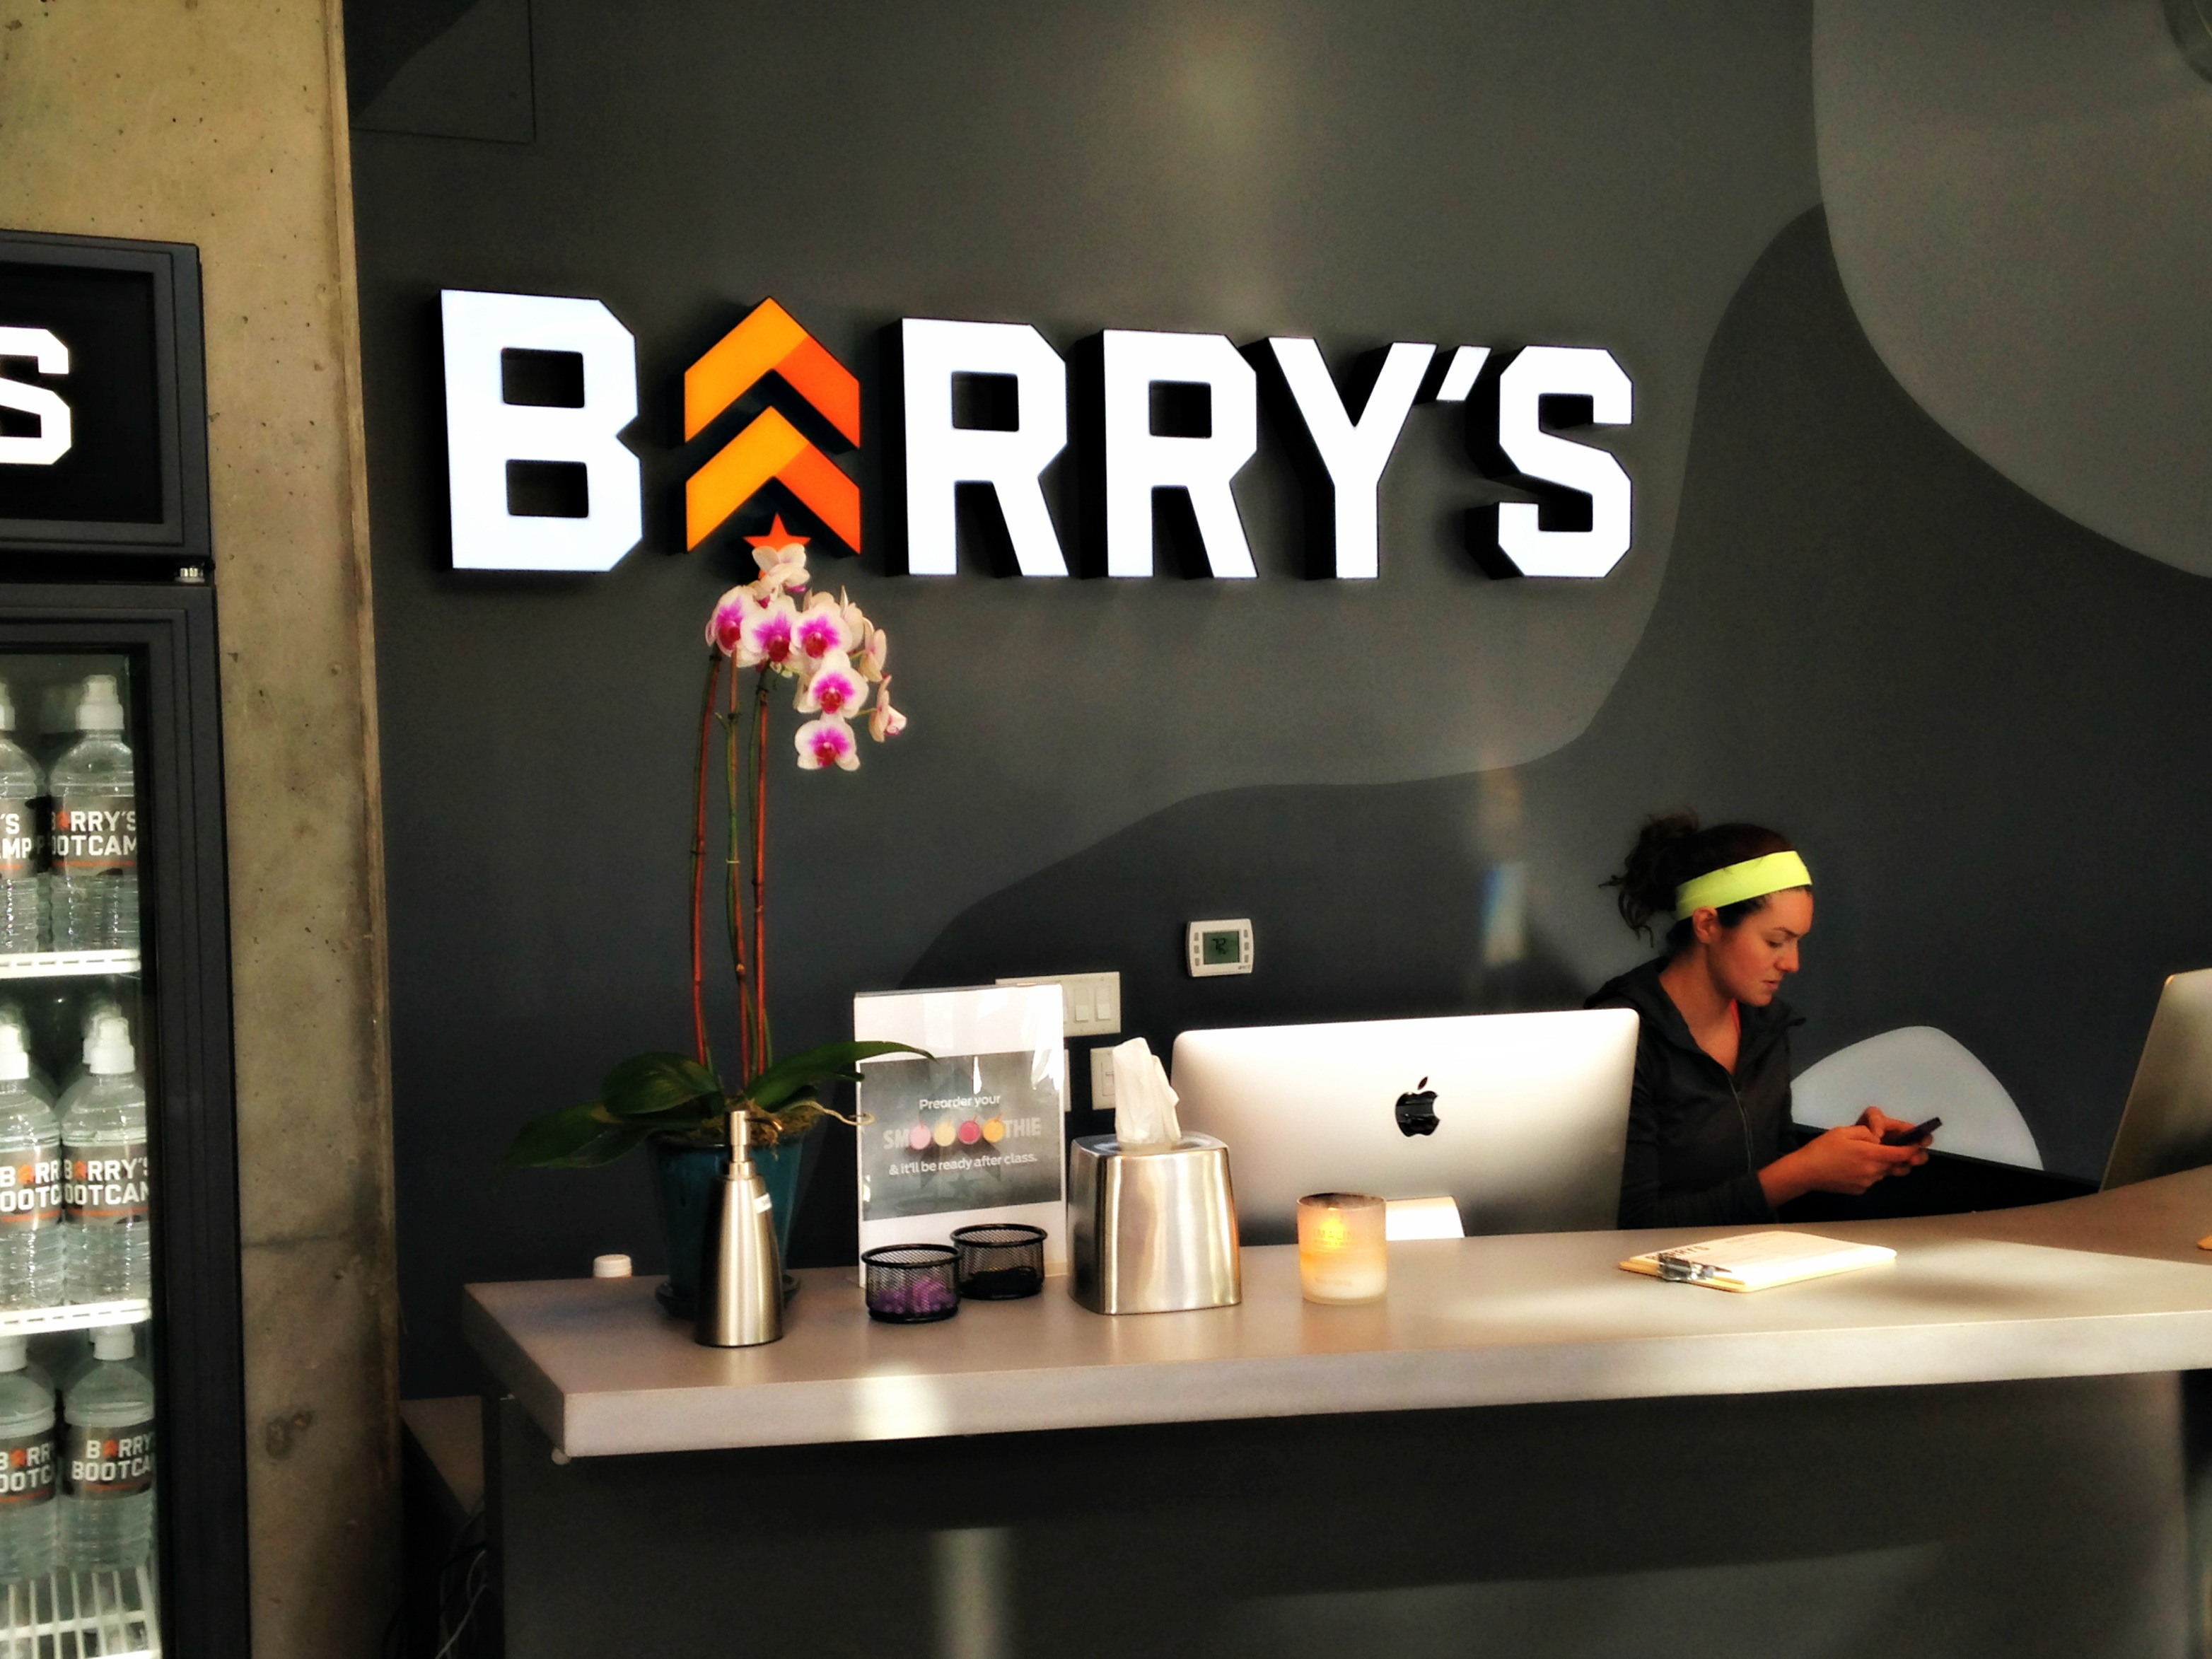 Barry's front desk